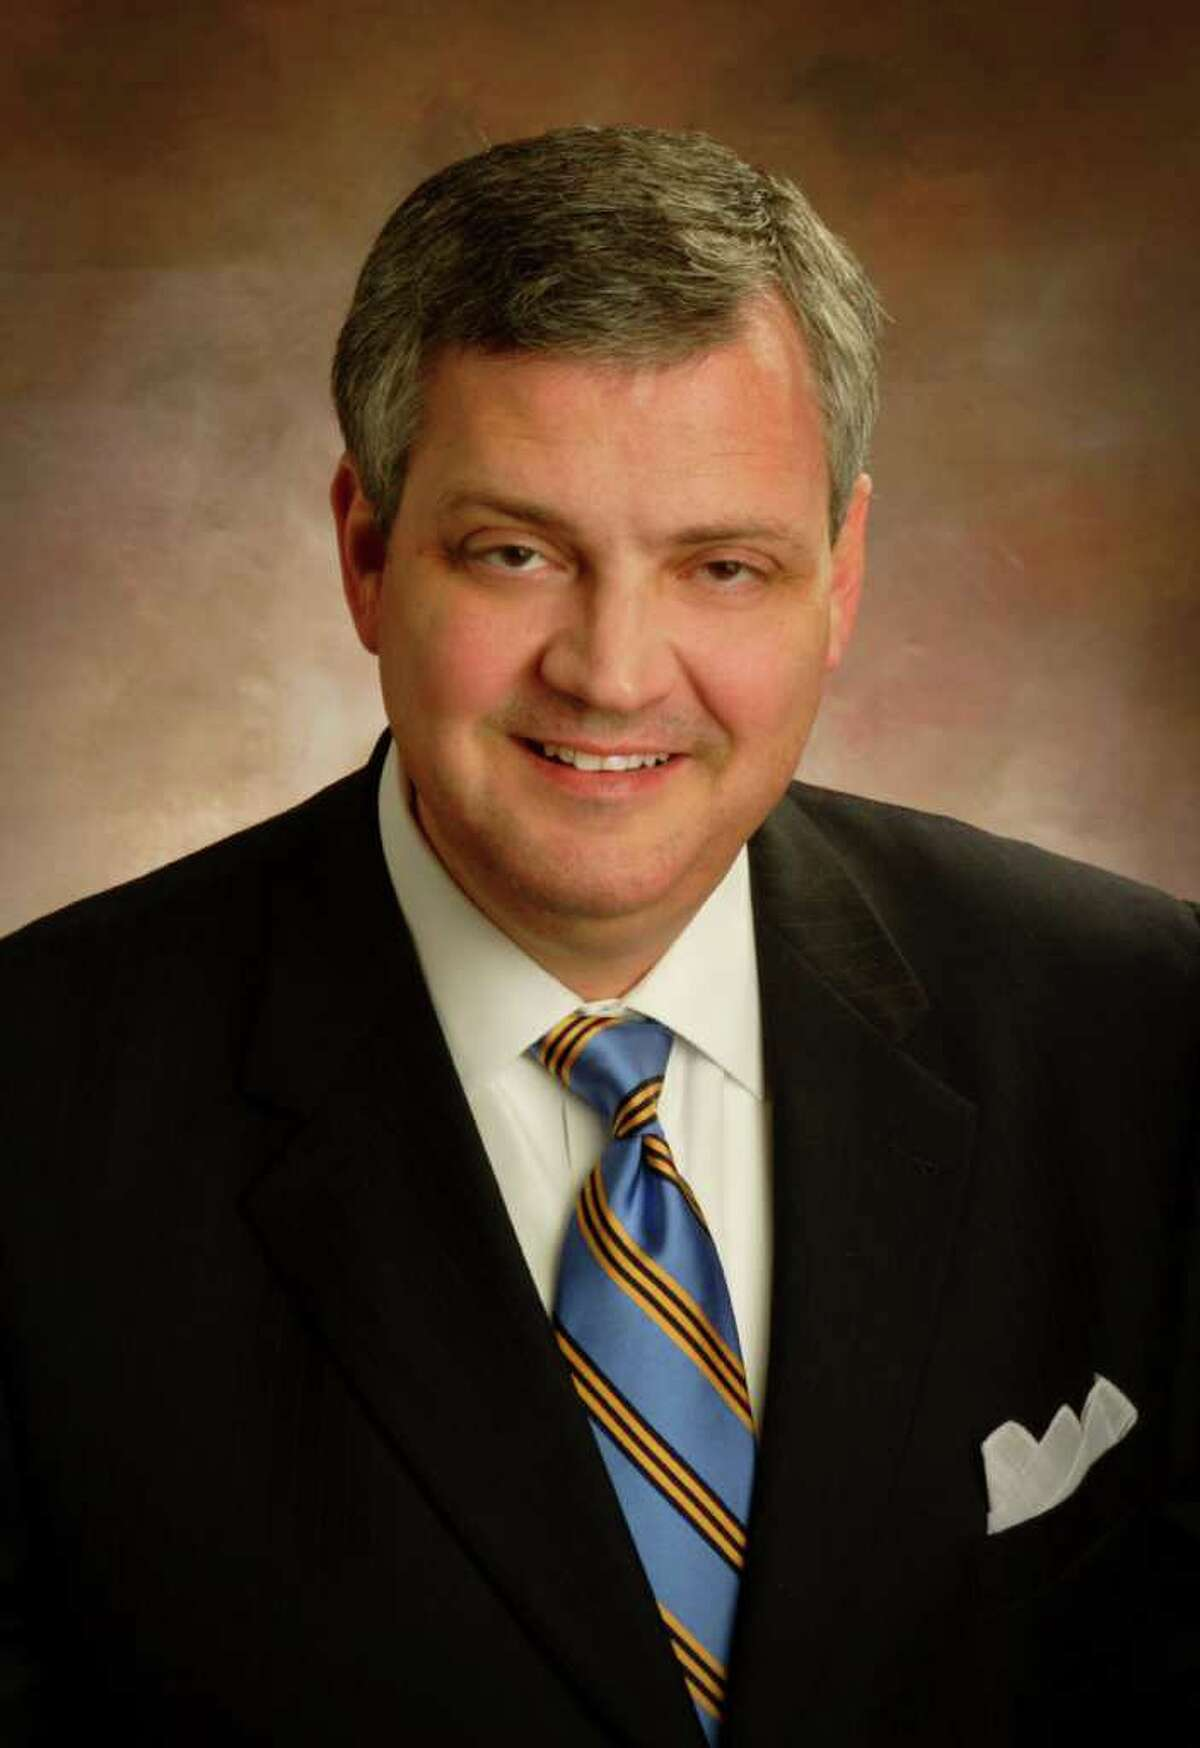 Al Mohler, a leading Southern Baptist figure, on Thursday apologized for supporting a religious leader who was accused of helping conceal sexual abuses at his former church. >>>See reactions from other church leaders to the Southern Baptist sex abuse investigation ...